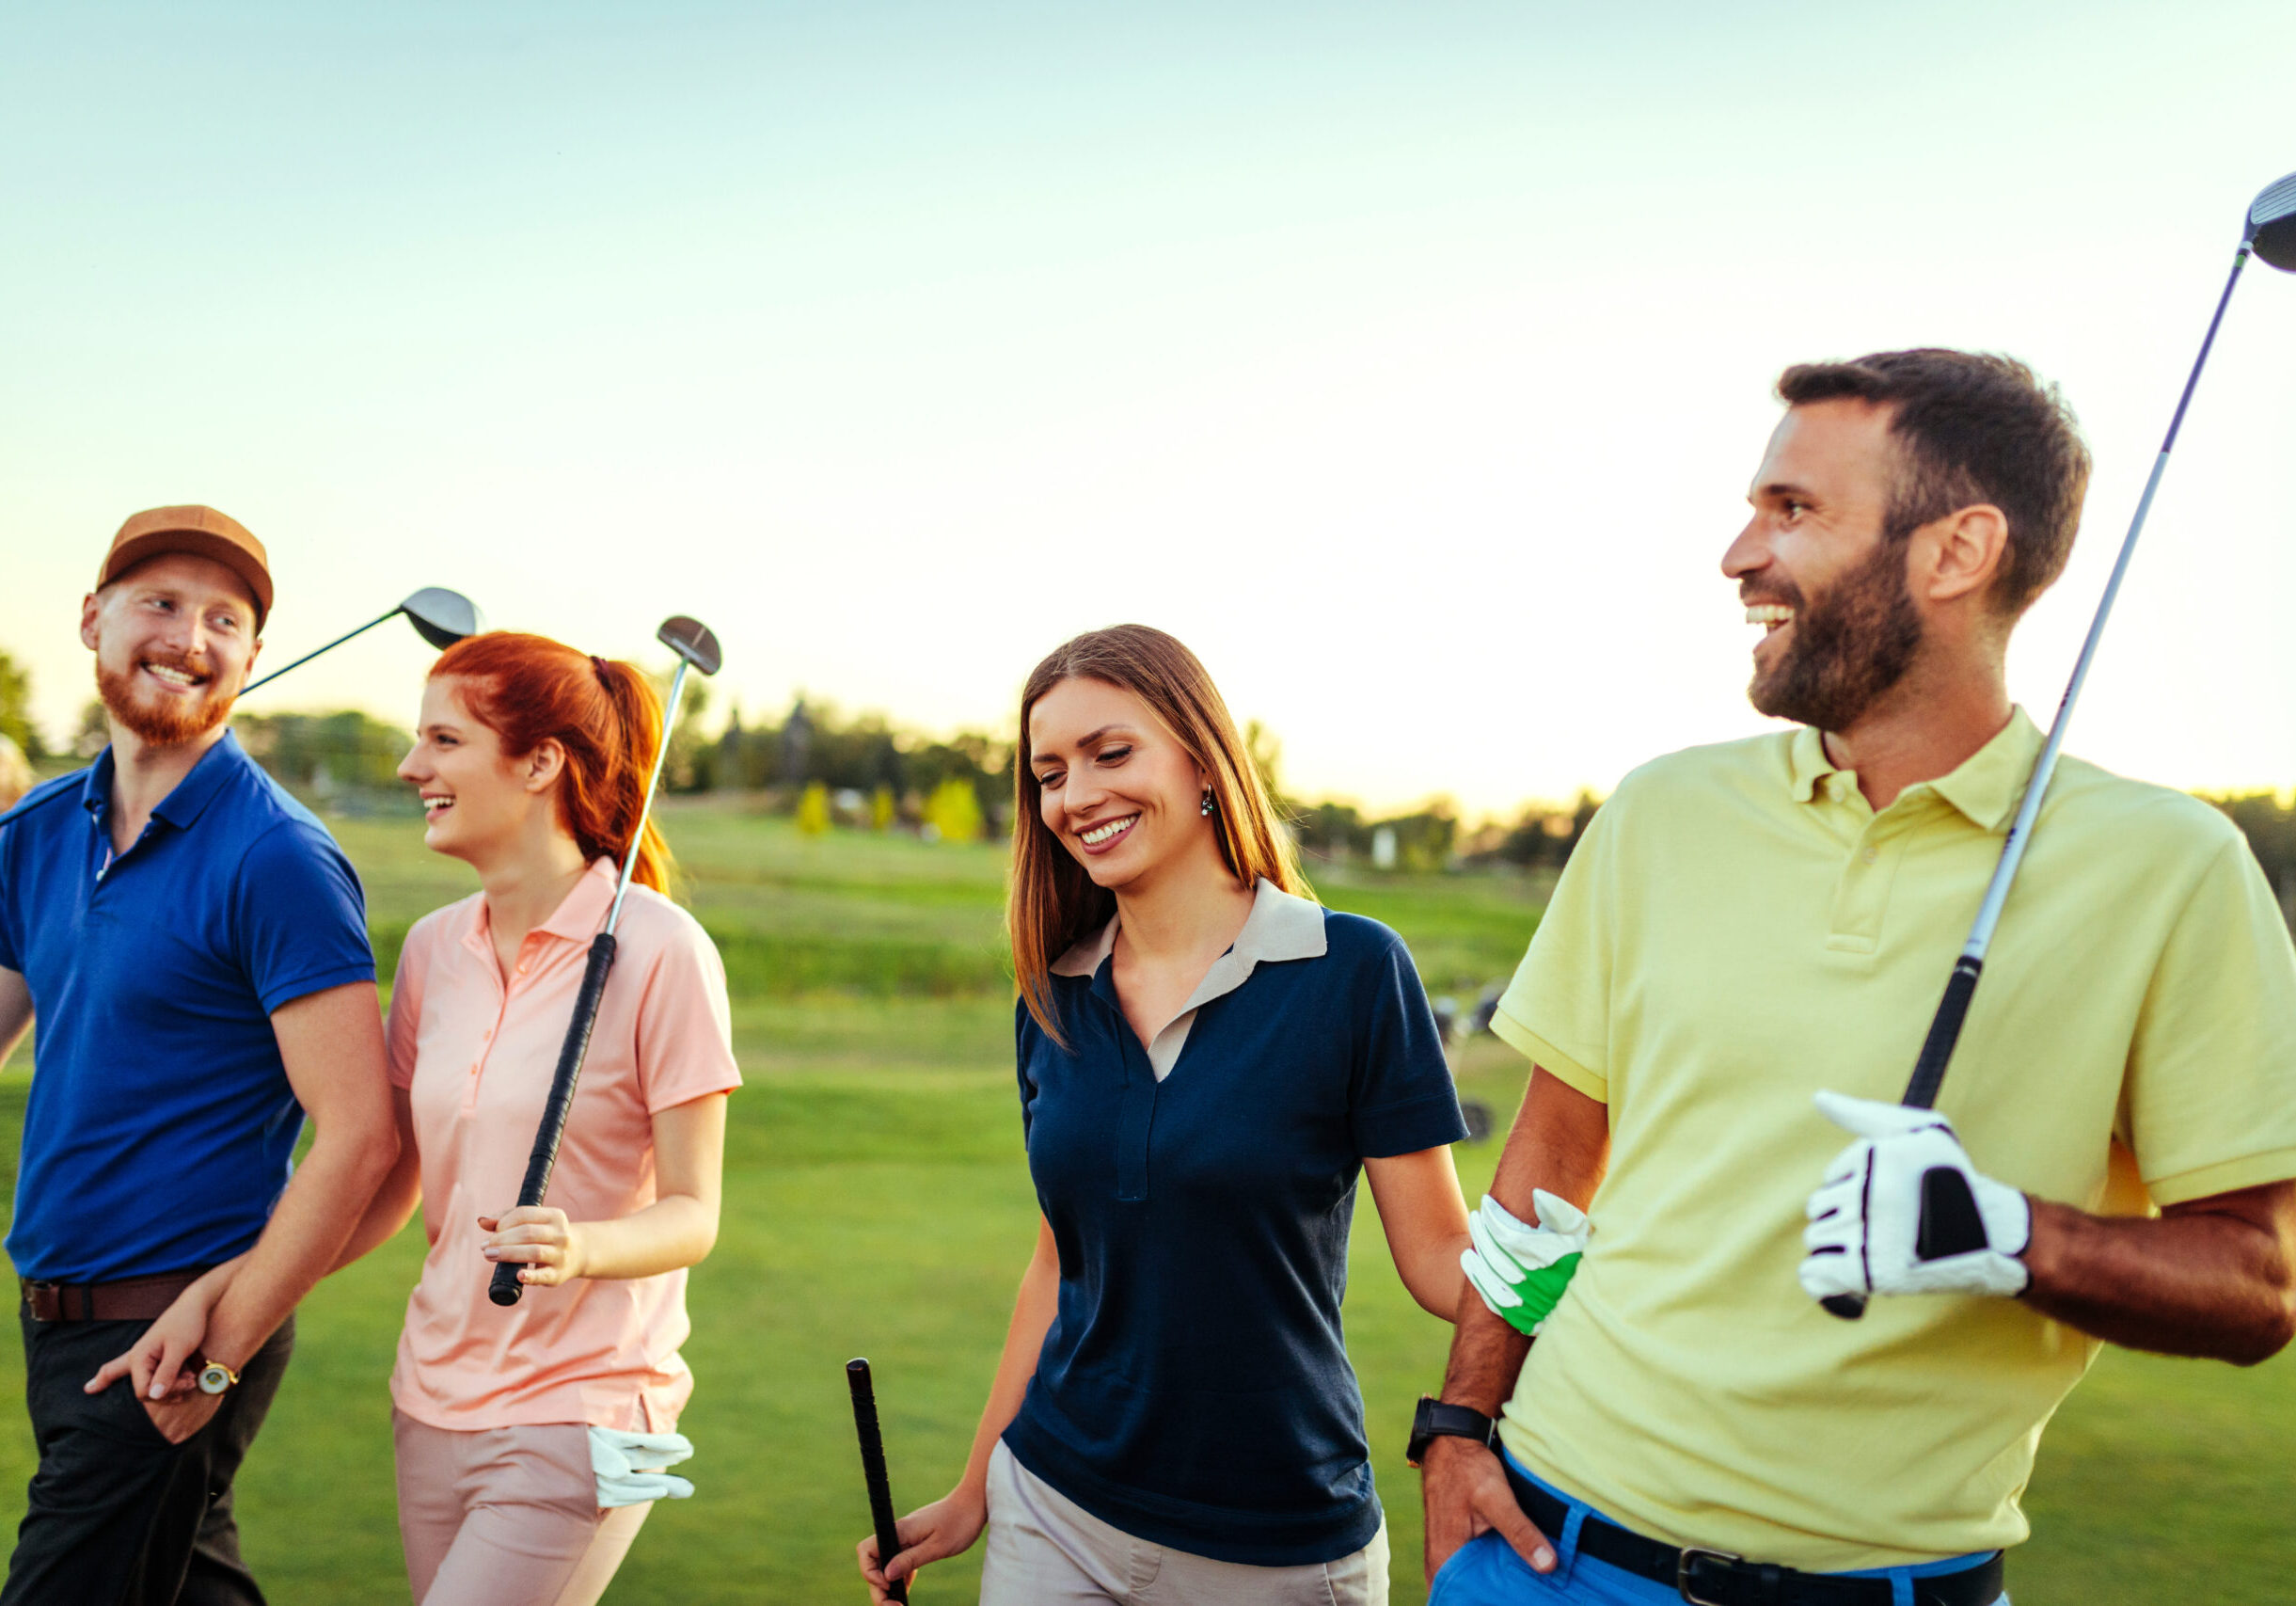 COUPLES GOLF LESSONS